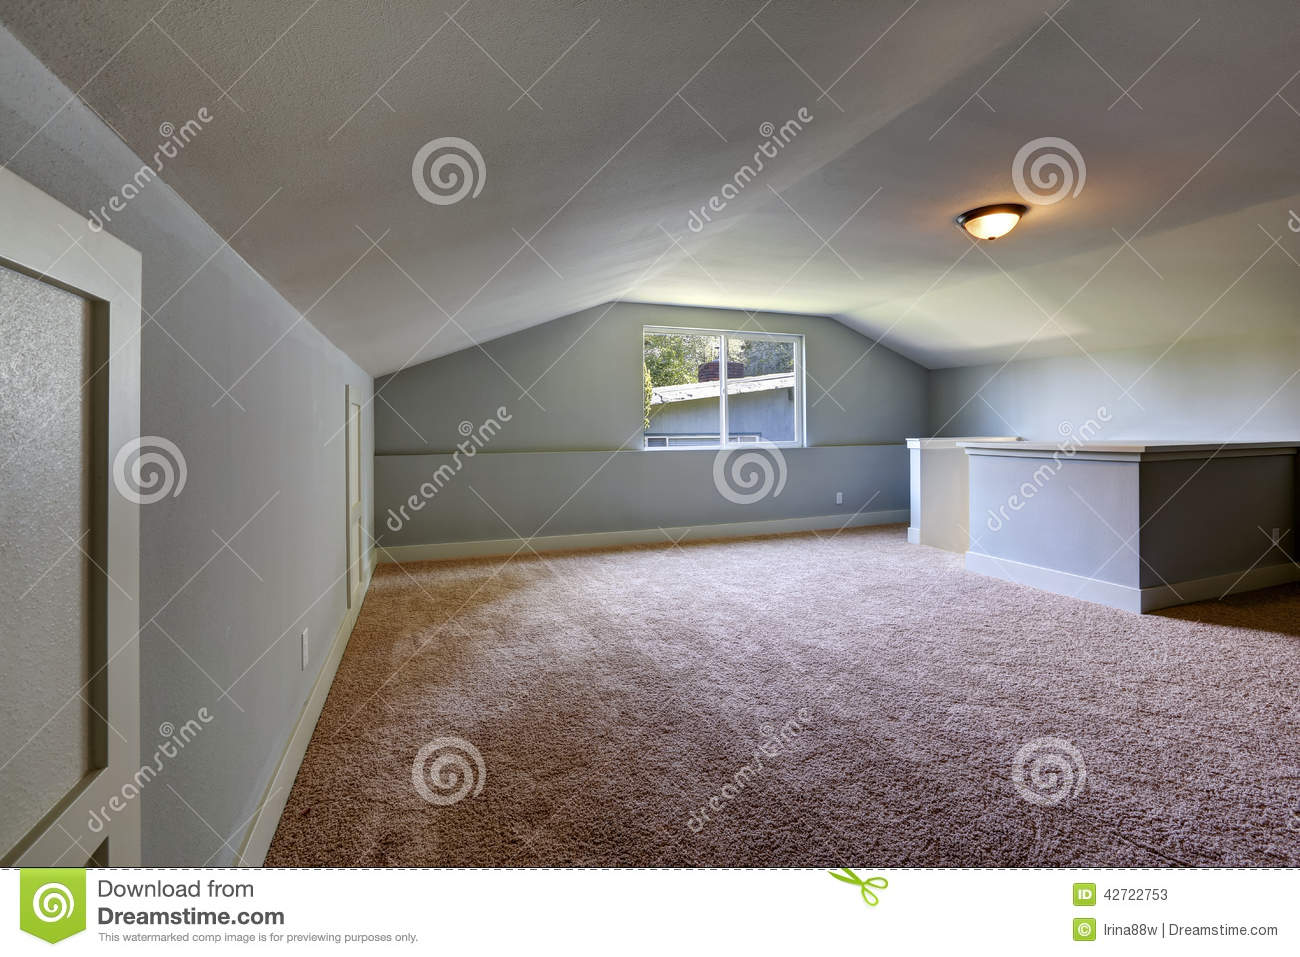 Brown Walls In Bedroom Empty Room With Low Vaulted Ceiling Stock Photo Image